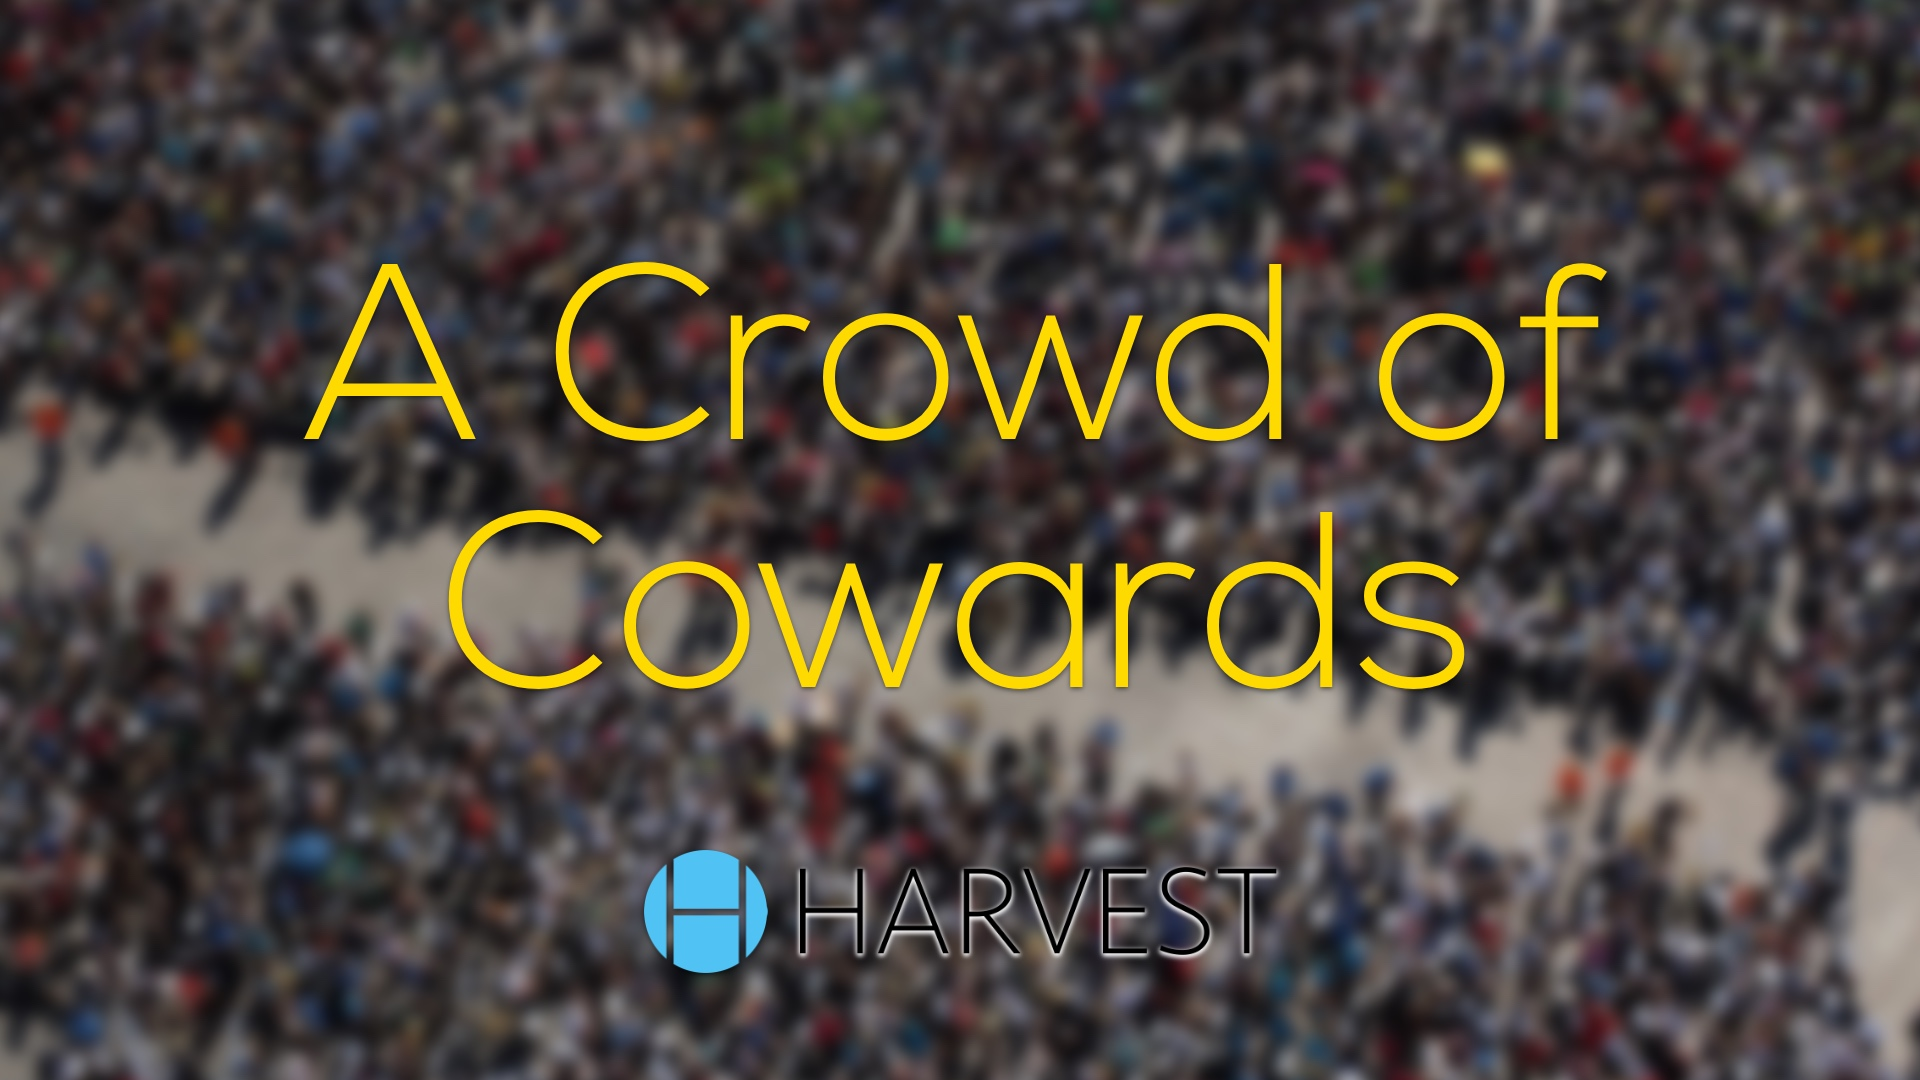 A Crowd of Cowards